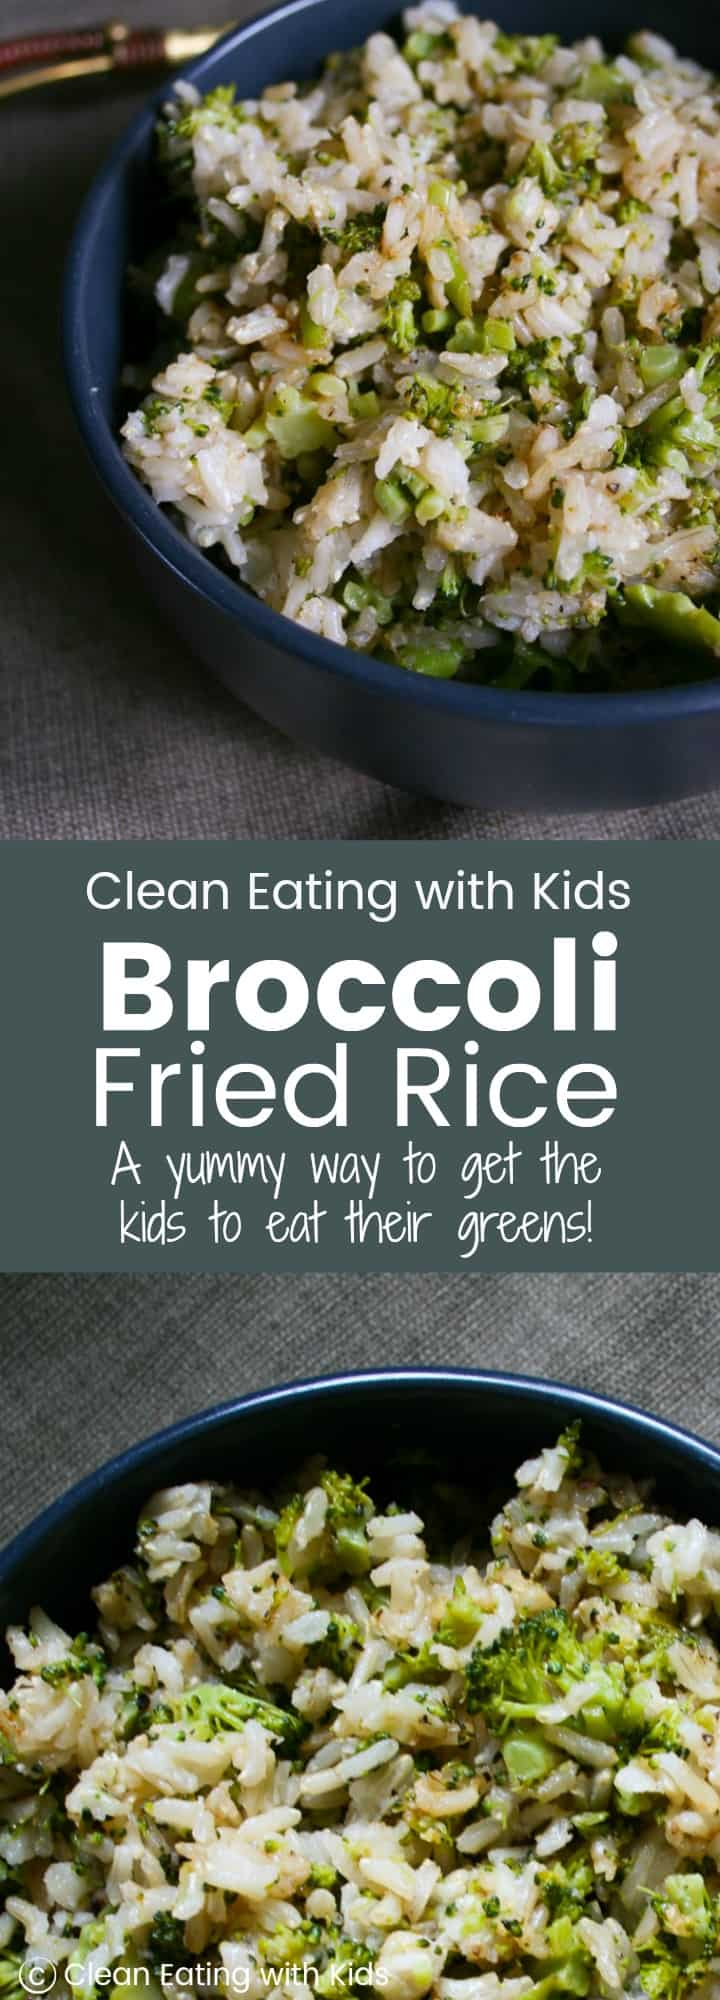 Okay, You have to try this! Seriously. Even my fussy kid ate a bowl full of this broccoli fried rice. Perfect with any meal or just on it's delicious own. #vegan #healthy #sugarfree #cleaneating #realfood